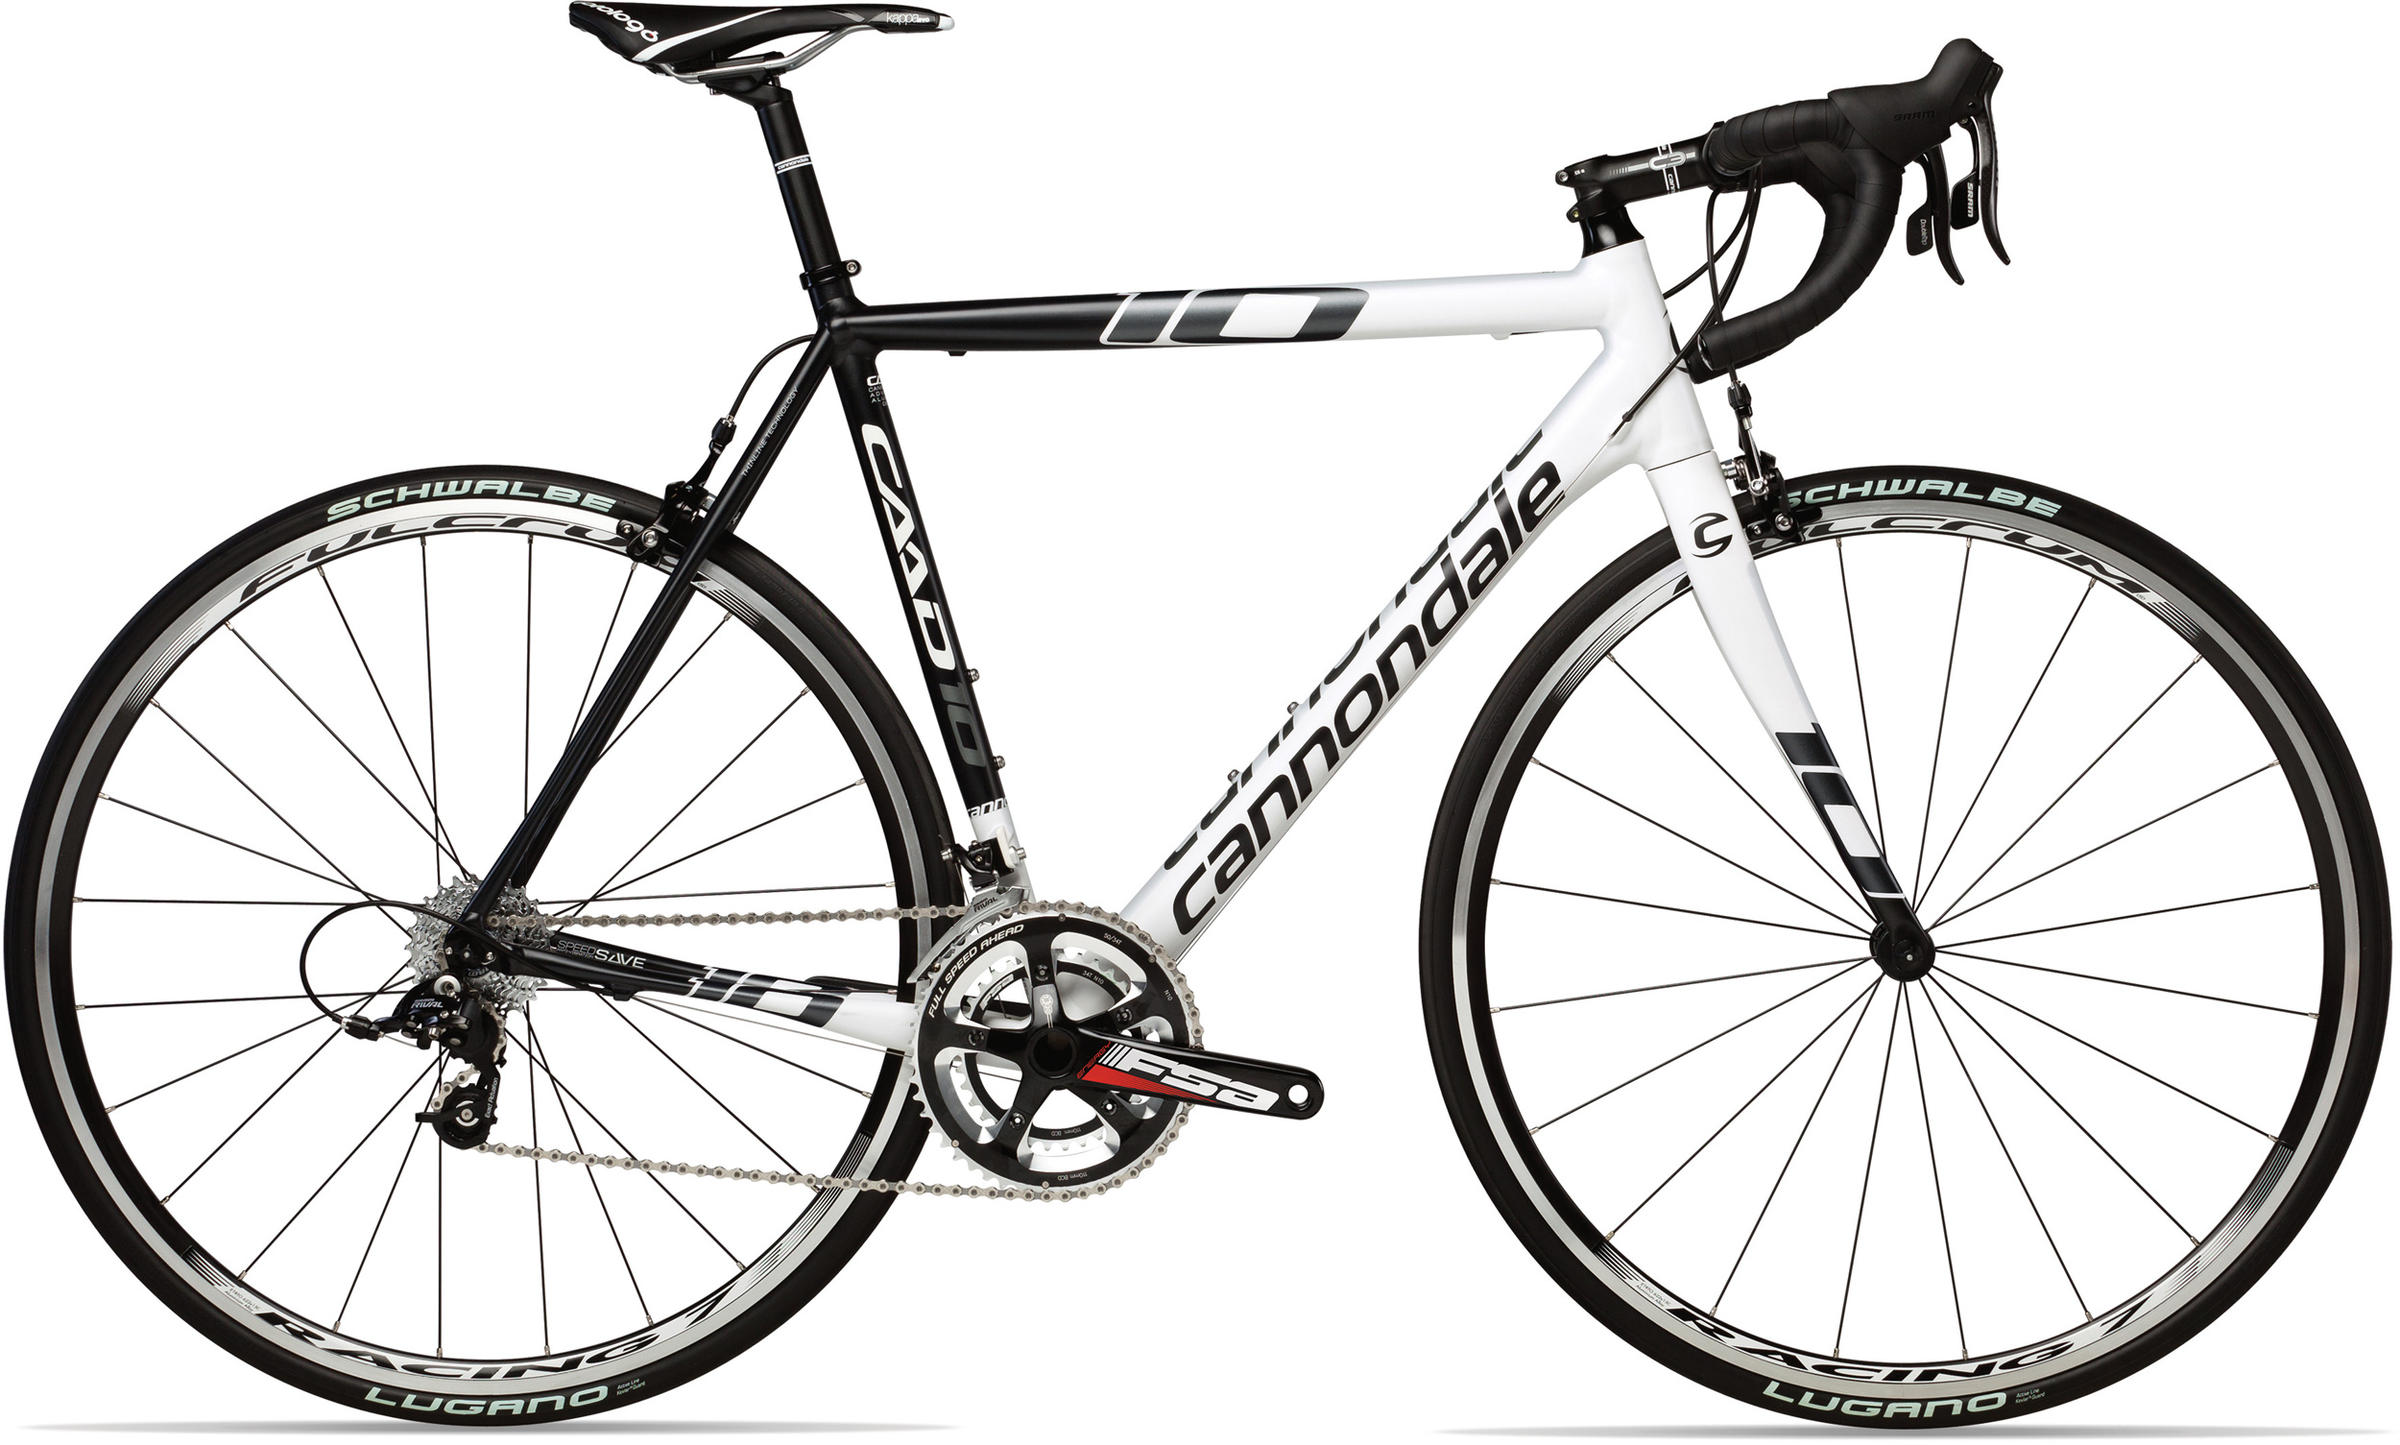 56890d06c1f Cannondale CAAD10 4 Rival C - Gregg's Cycles